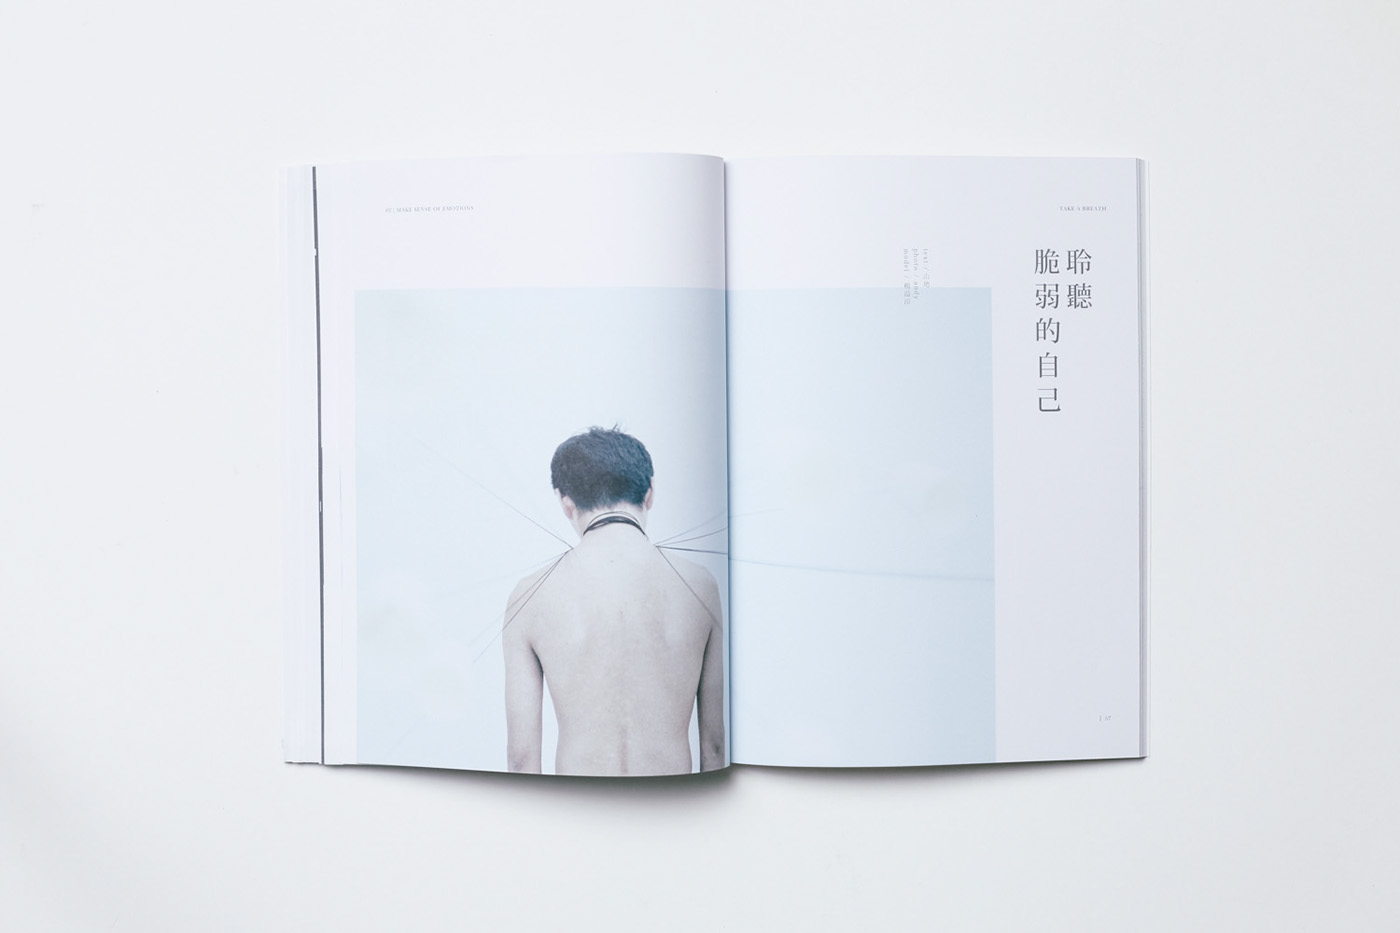 Breakazine! 突破書誌 #049《唞氣》- 雜誌設計 Magazine Design on Behance